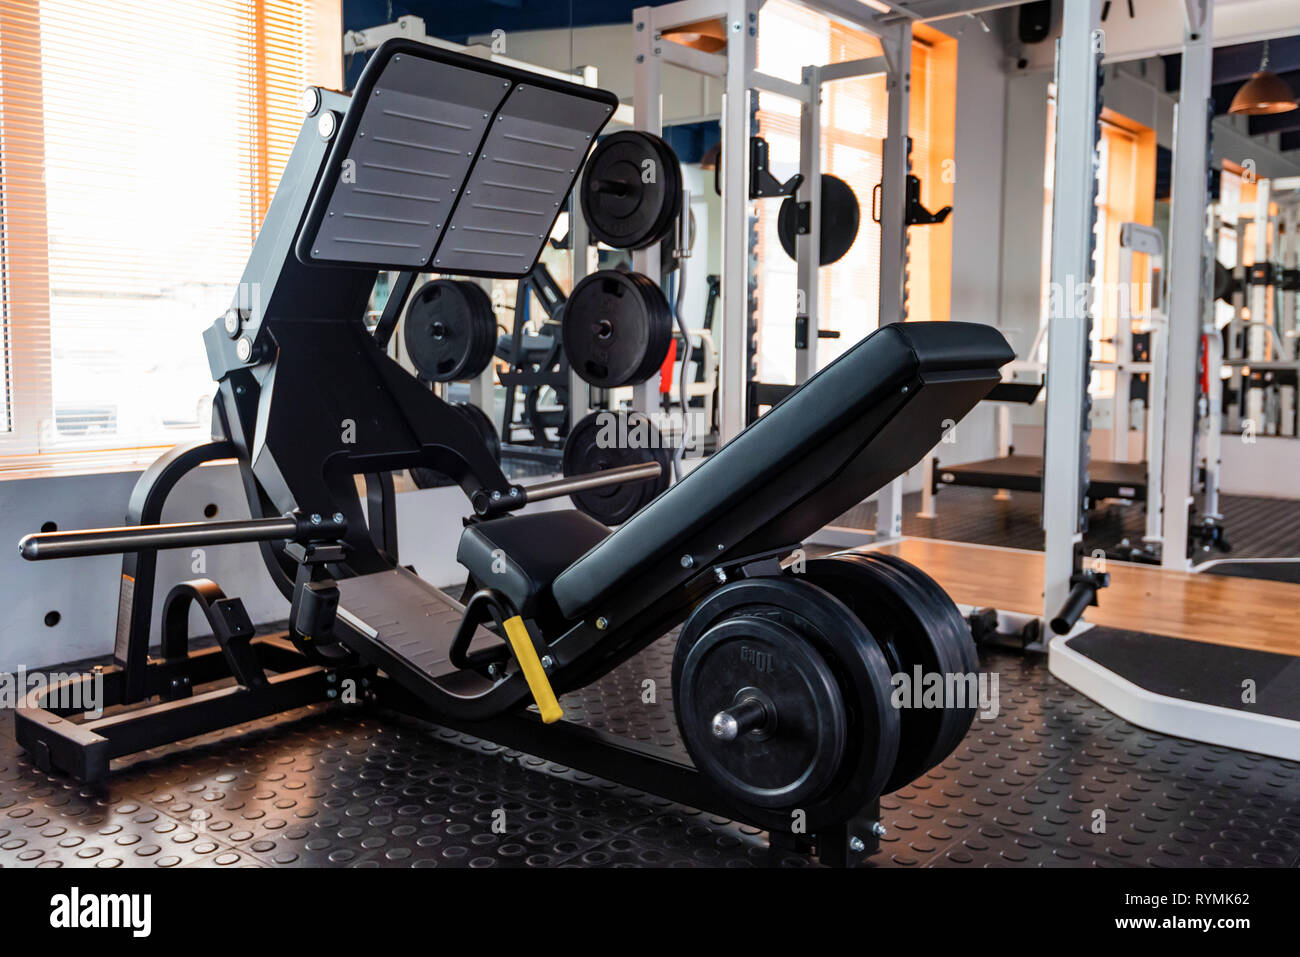 Empty leg press exercise machine in modern gym - Stock Image